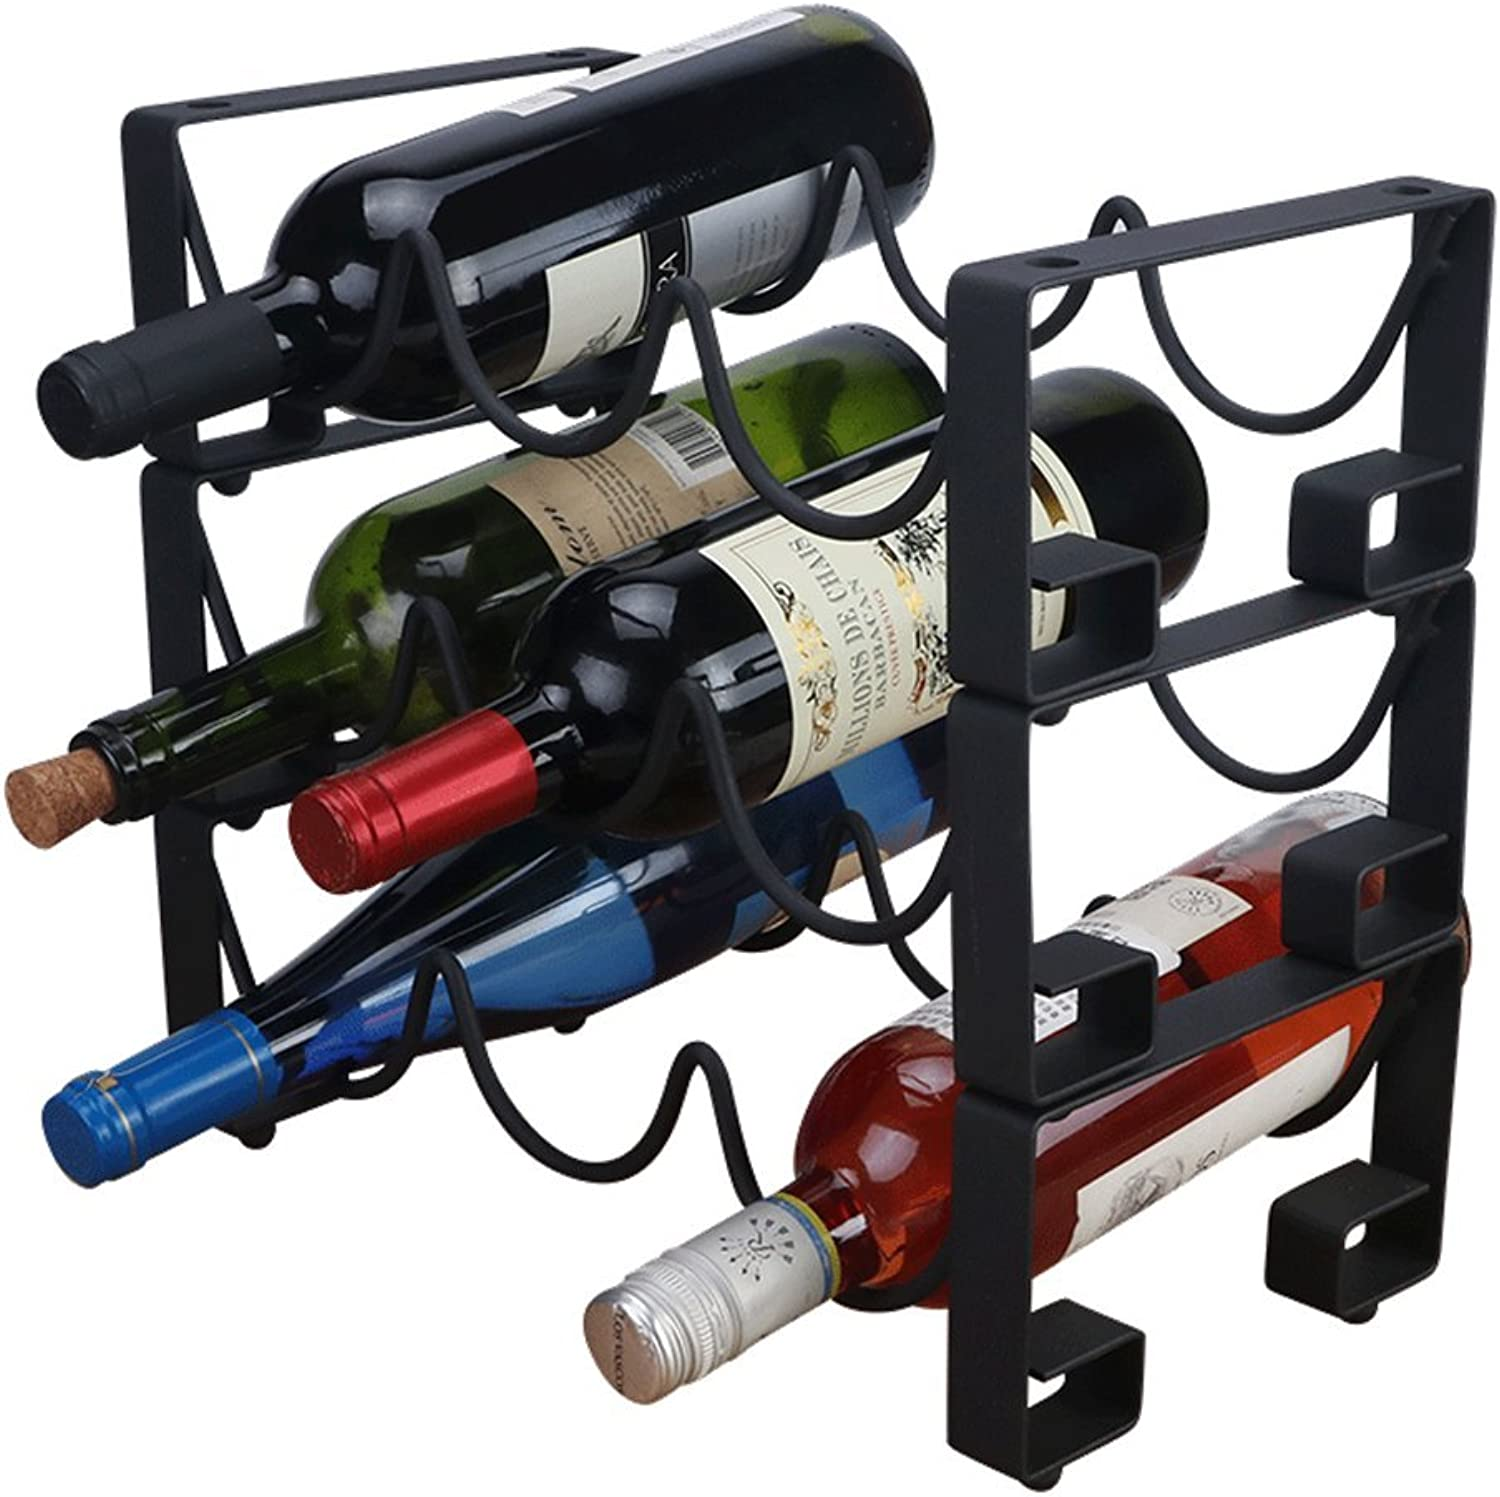 Leiking 9 Bottle Countertop Wine Rack Free-Standing Metal Bottle Holder and Storage Perfect for Bar, Cellar, Cabinet and Pantry in Classy, Decorative, Modern and Sturdy Black Finish